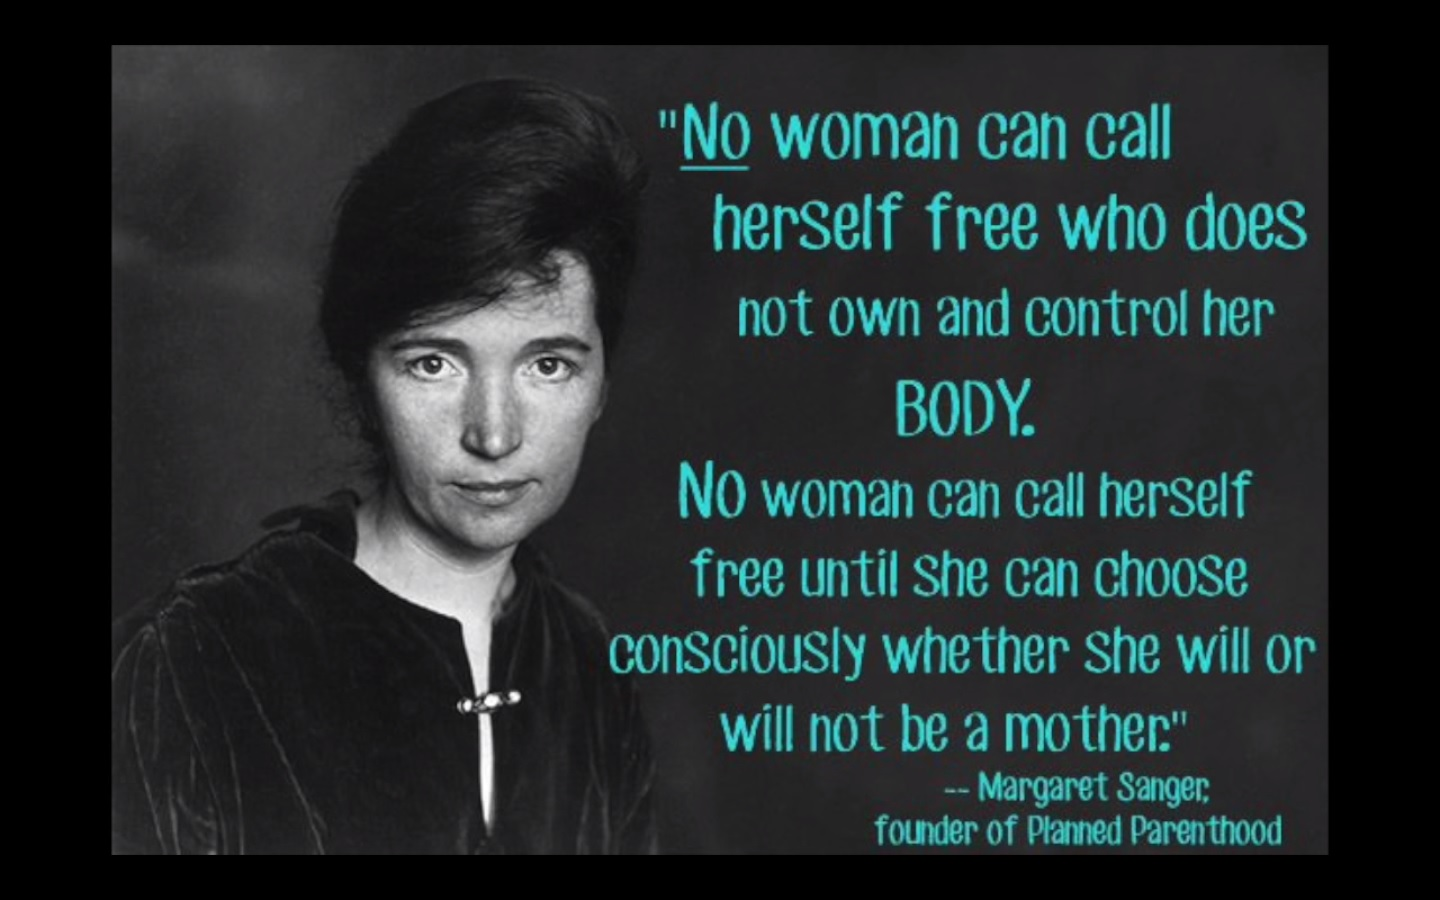 margaret sanger and birth control essay Complete text transcript of margaret sanger birth control speech margaret sanger the  the margaret sanger papers, sophia smith collection at smith college.